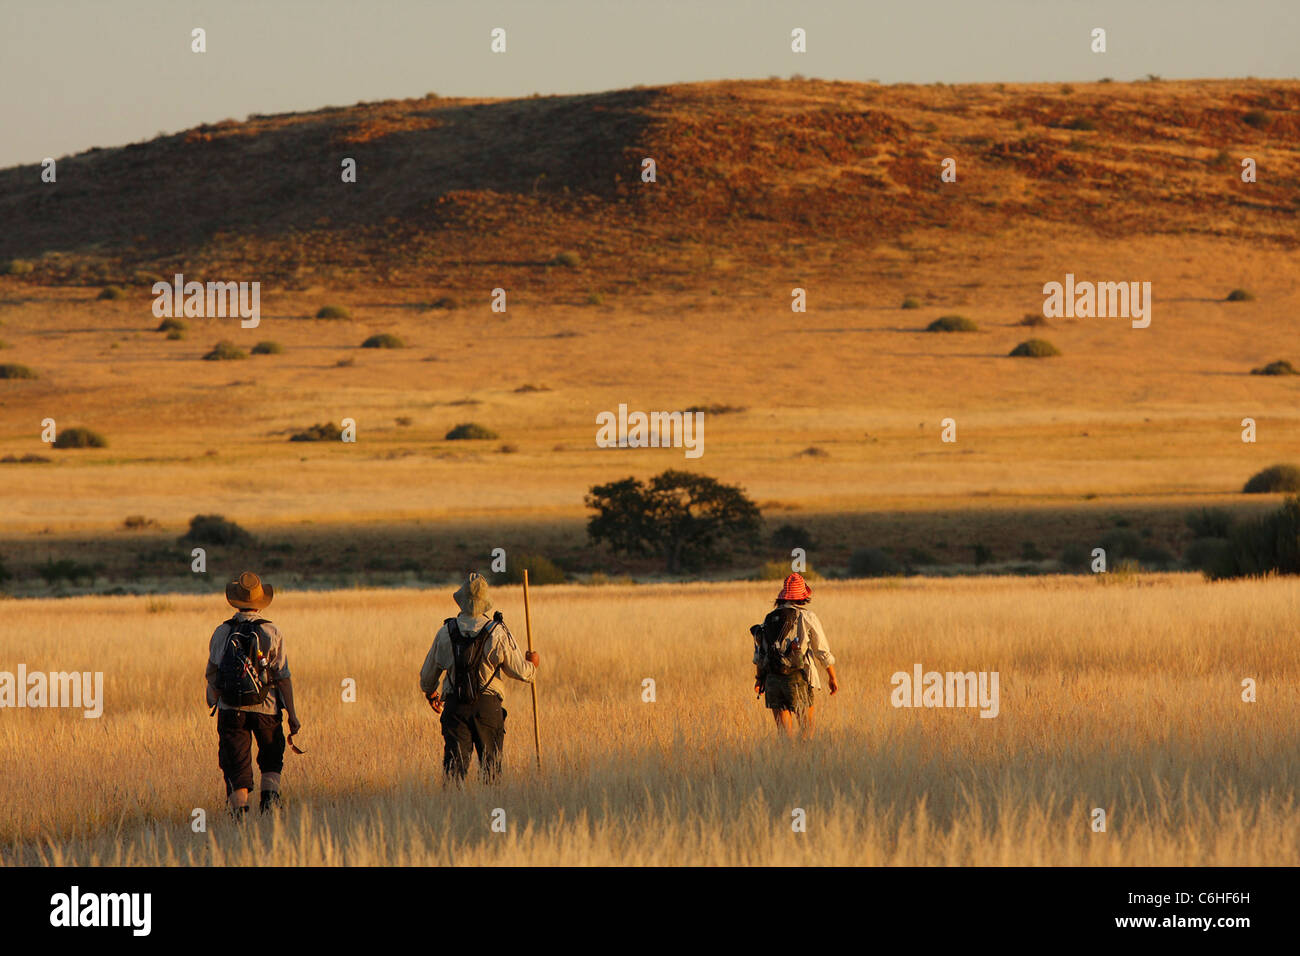 Hikers in desert landscape with bushman grass - Stock Image